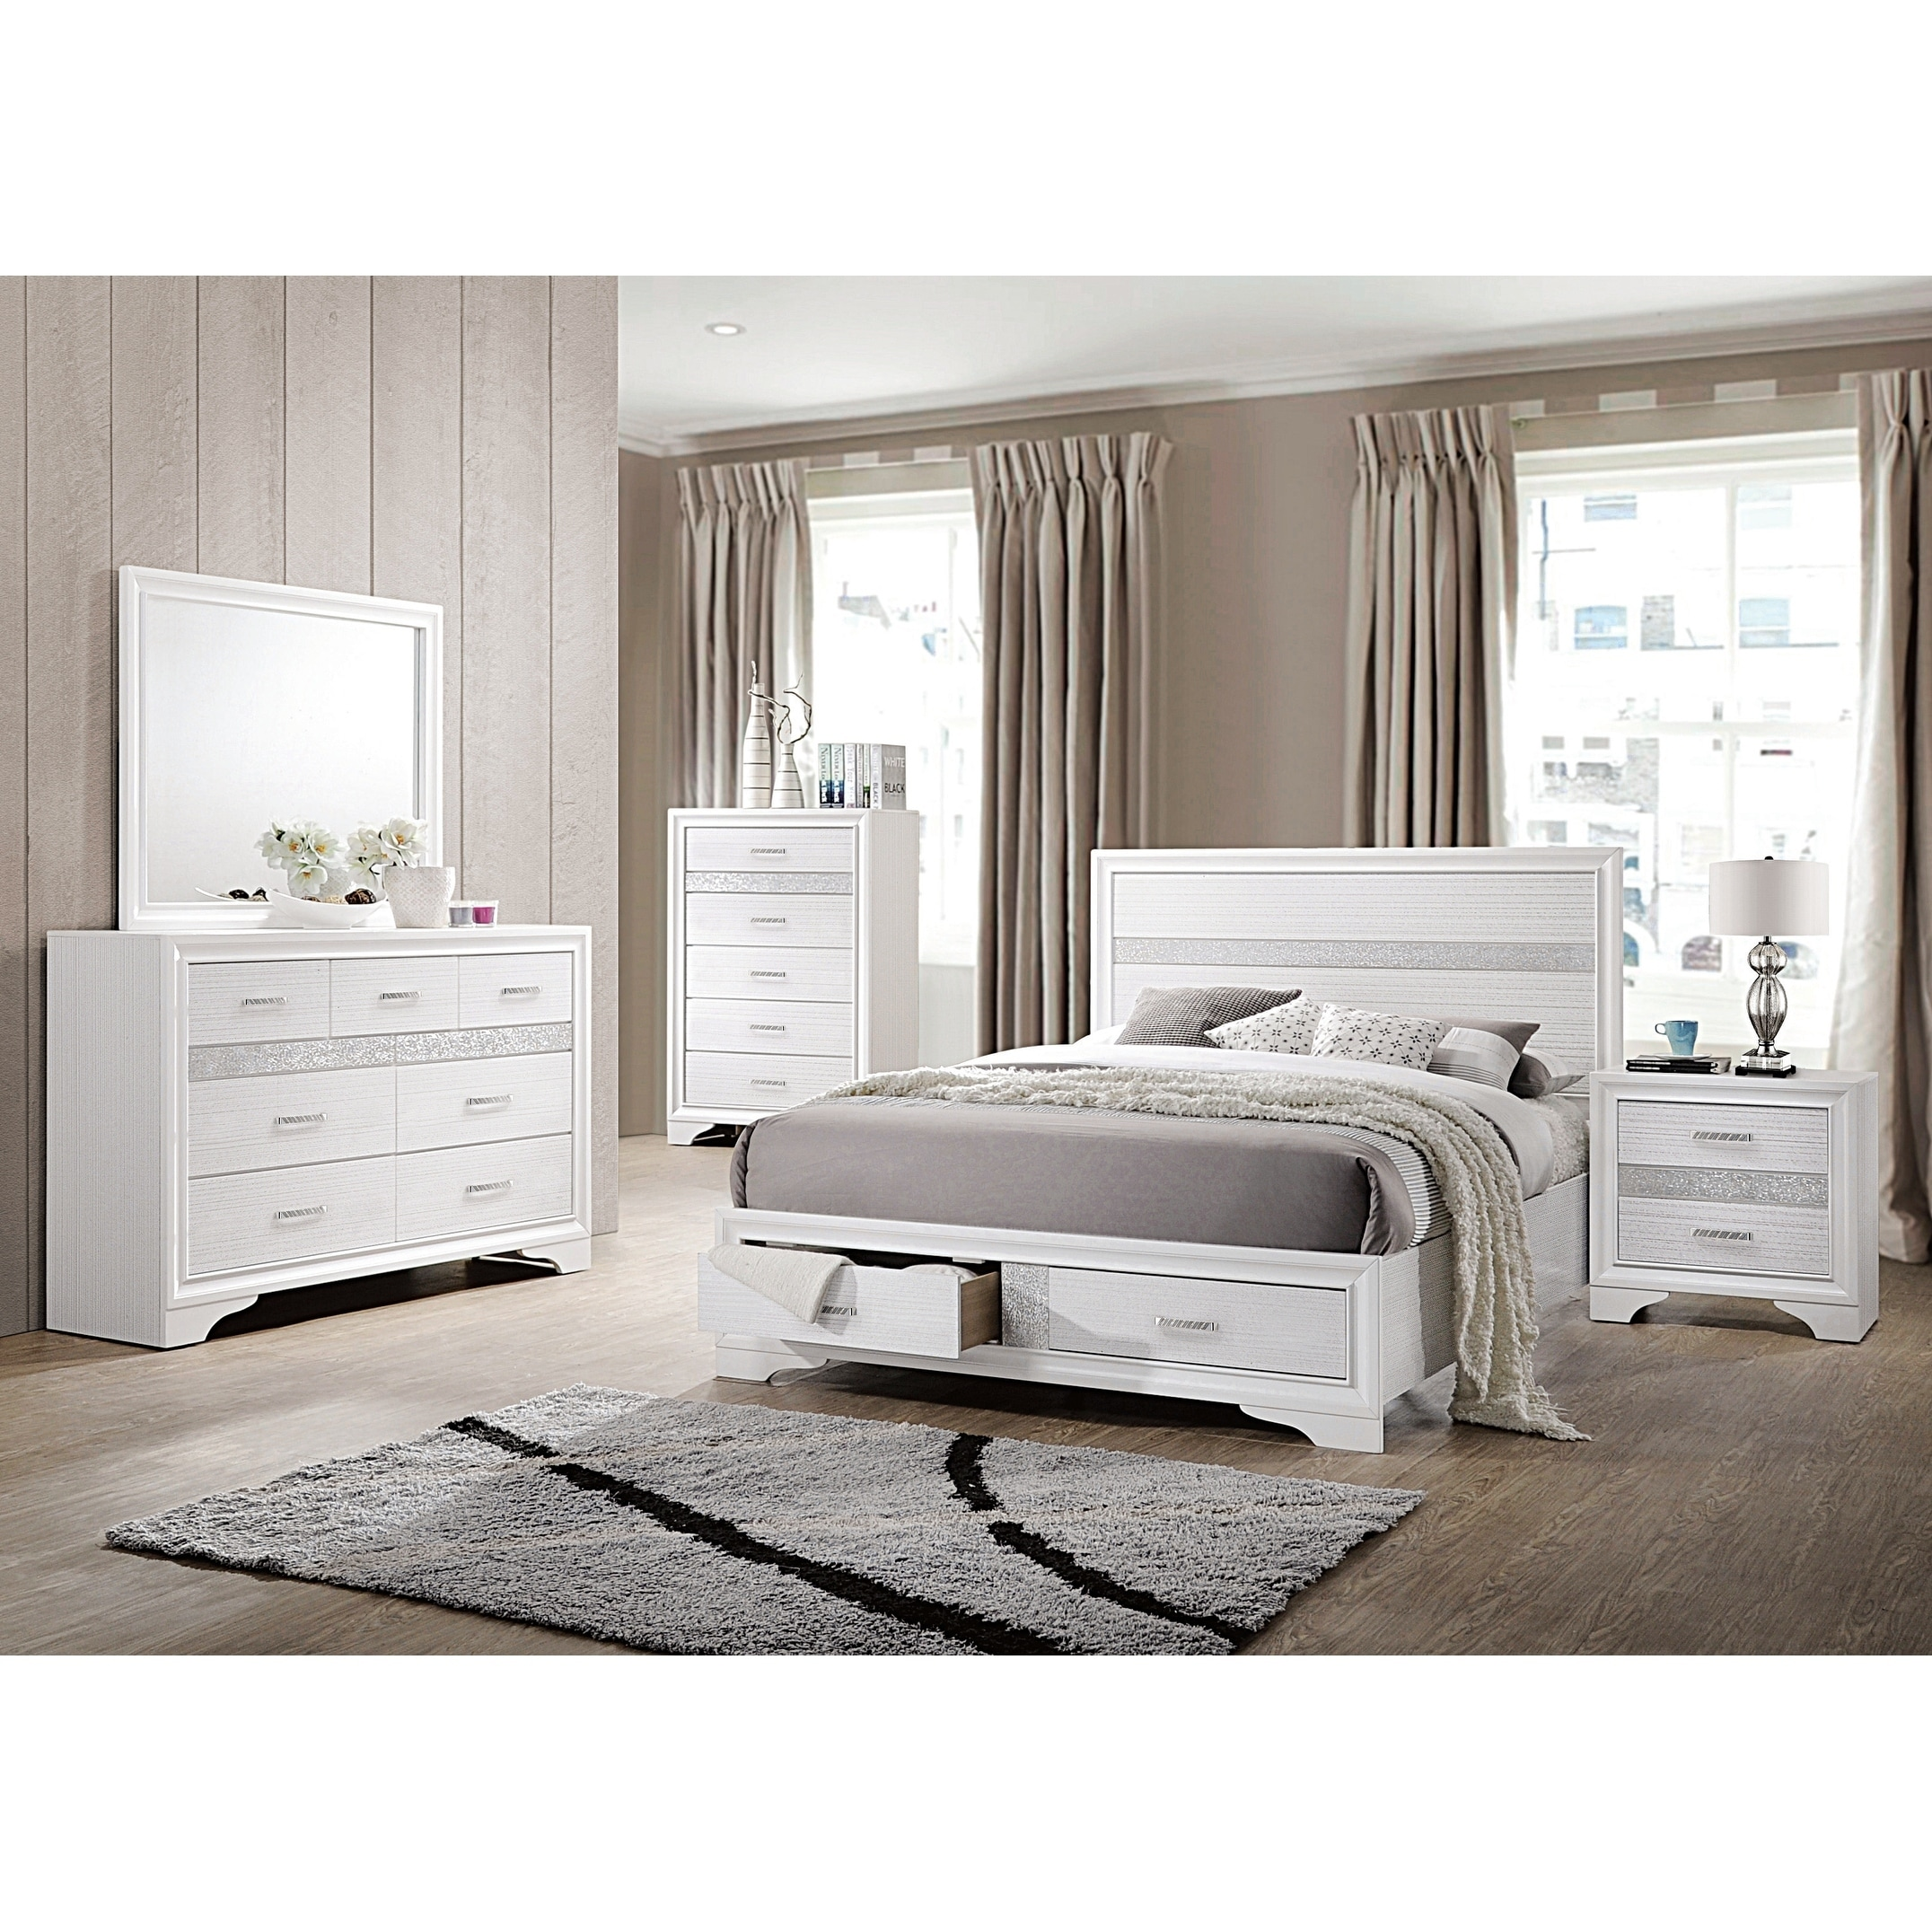 Miranda Contemporary White 5-piece Queen Size Bedroom Set (As Is Item)